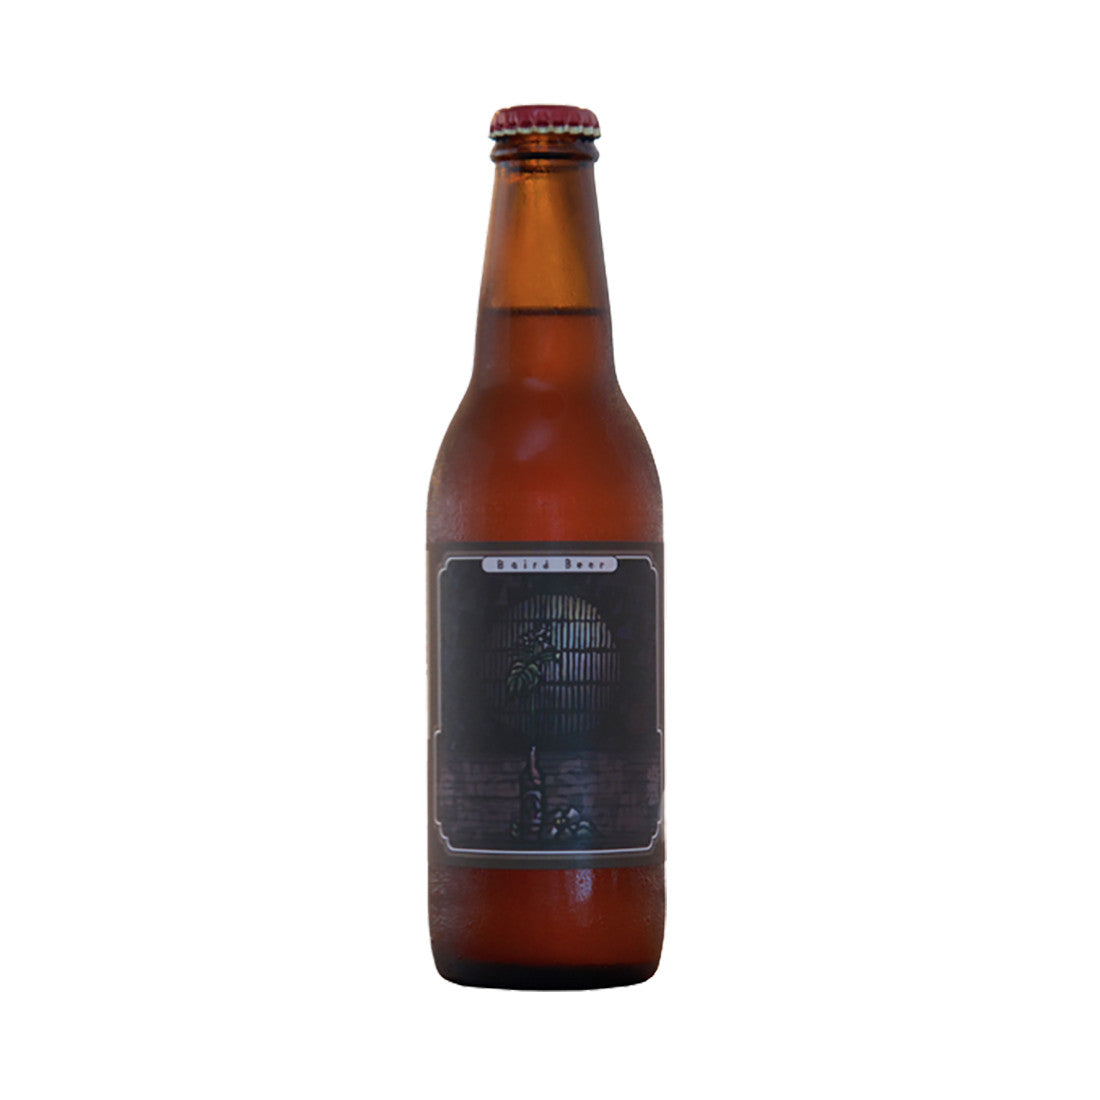 Baird Wabi-Sabi Japan Ale - 330ml Imported Craft Beer - Drinkka Alcohol Delivery Best Whiskey Wine Gin Beer Vodkas and more for Parties in Makati BGC Fort and Manila | Bevtools Bar and Beverage Tools